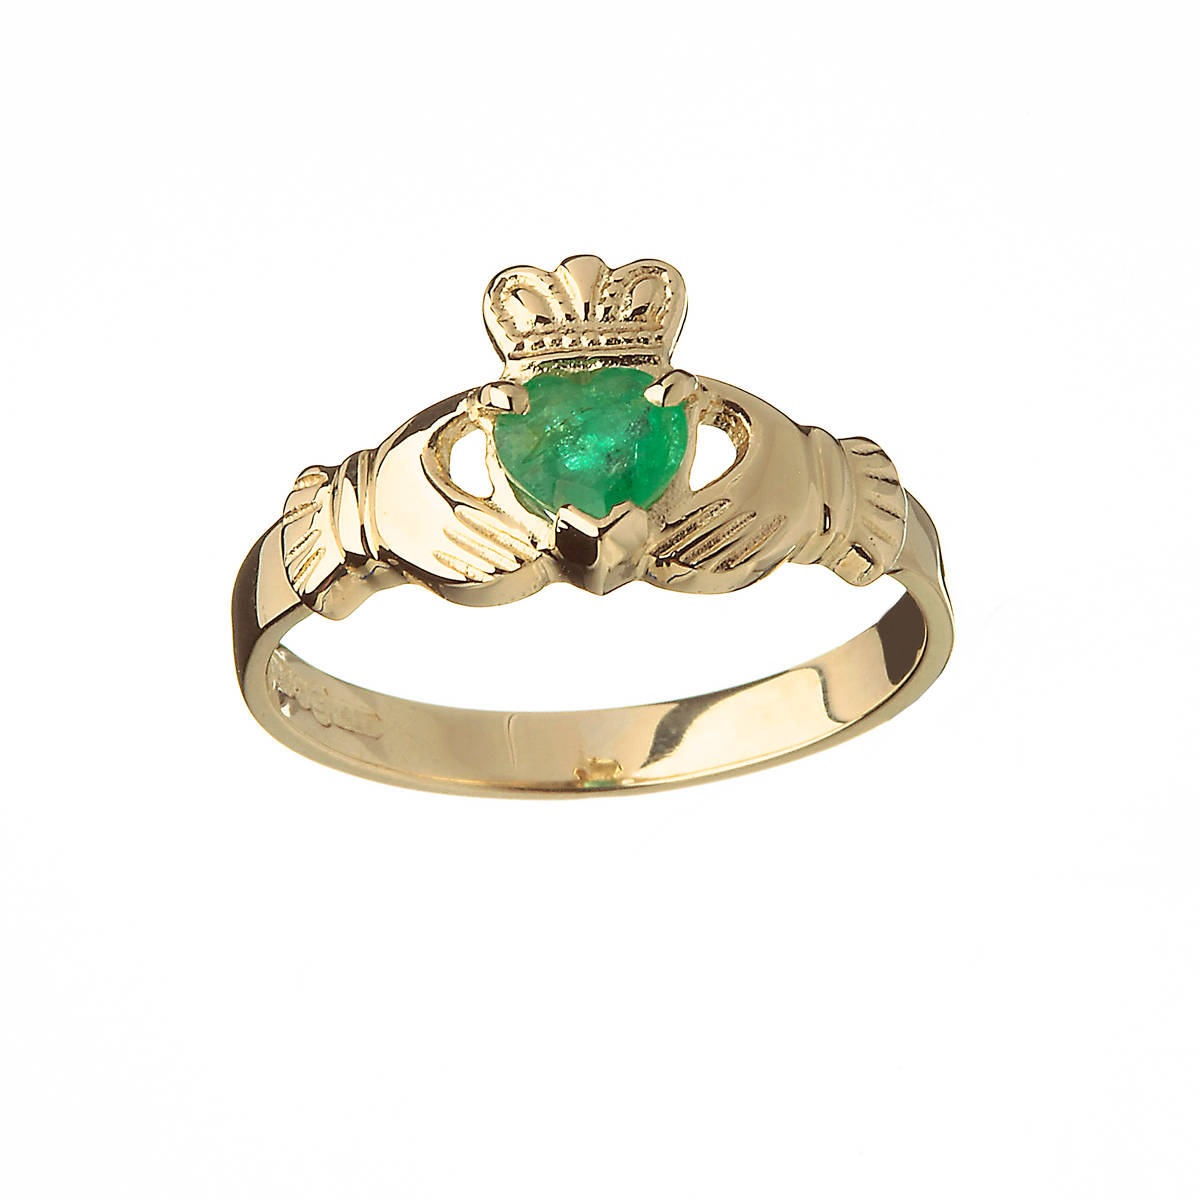 10 carat Yellow Gold Real Emerald Claddagh Ring